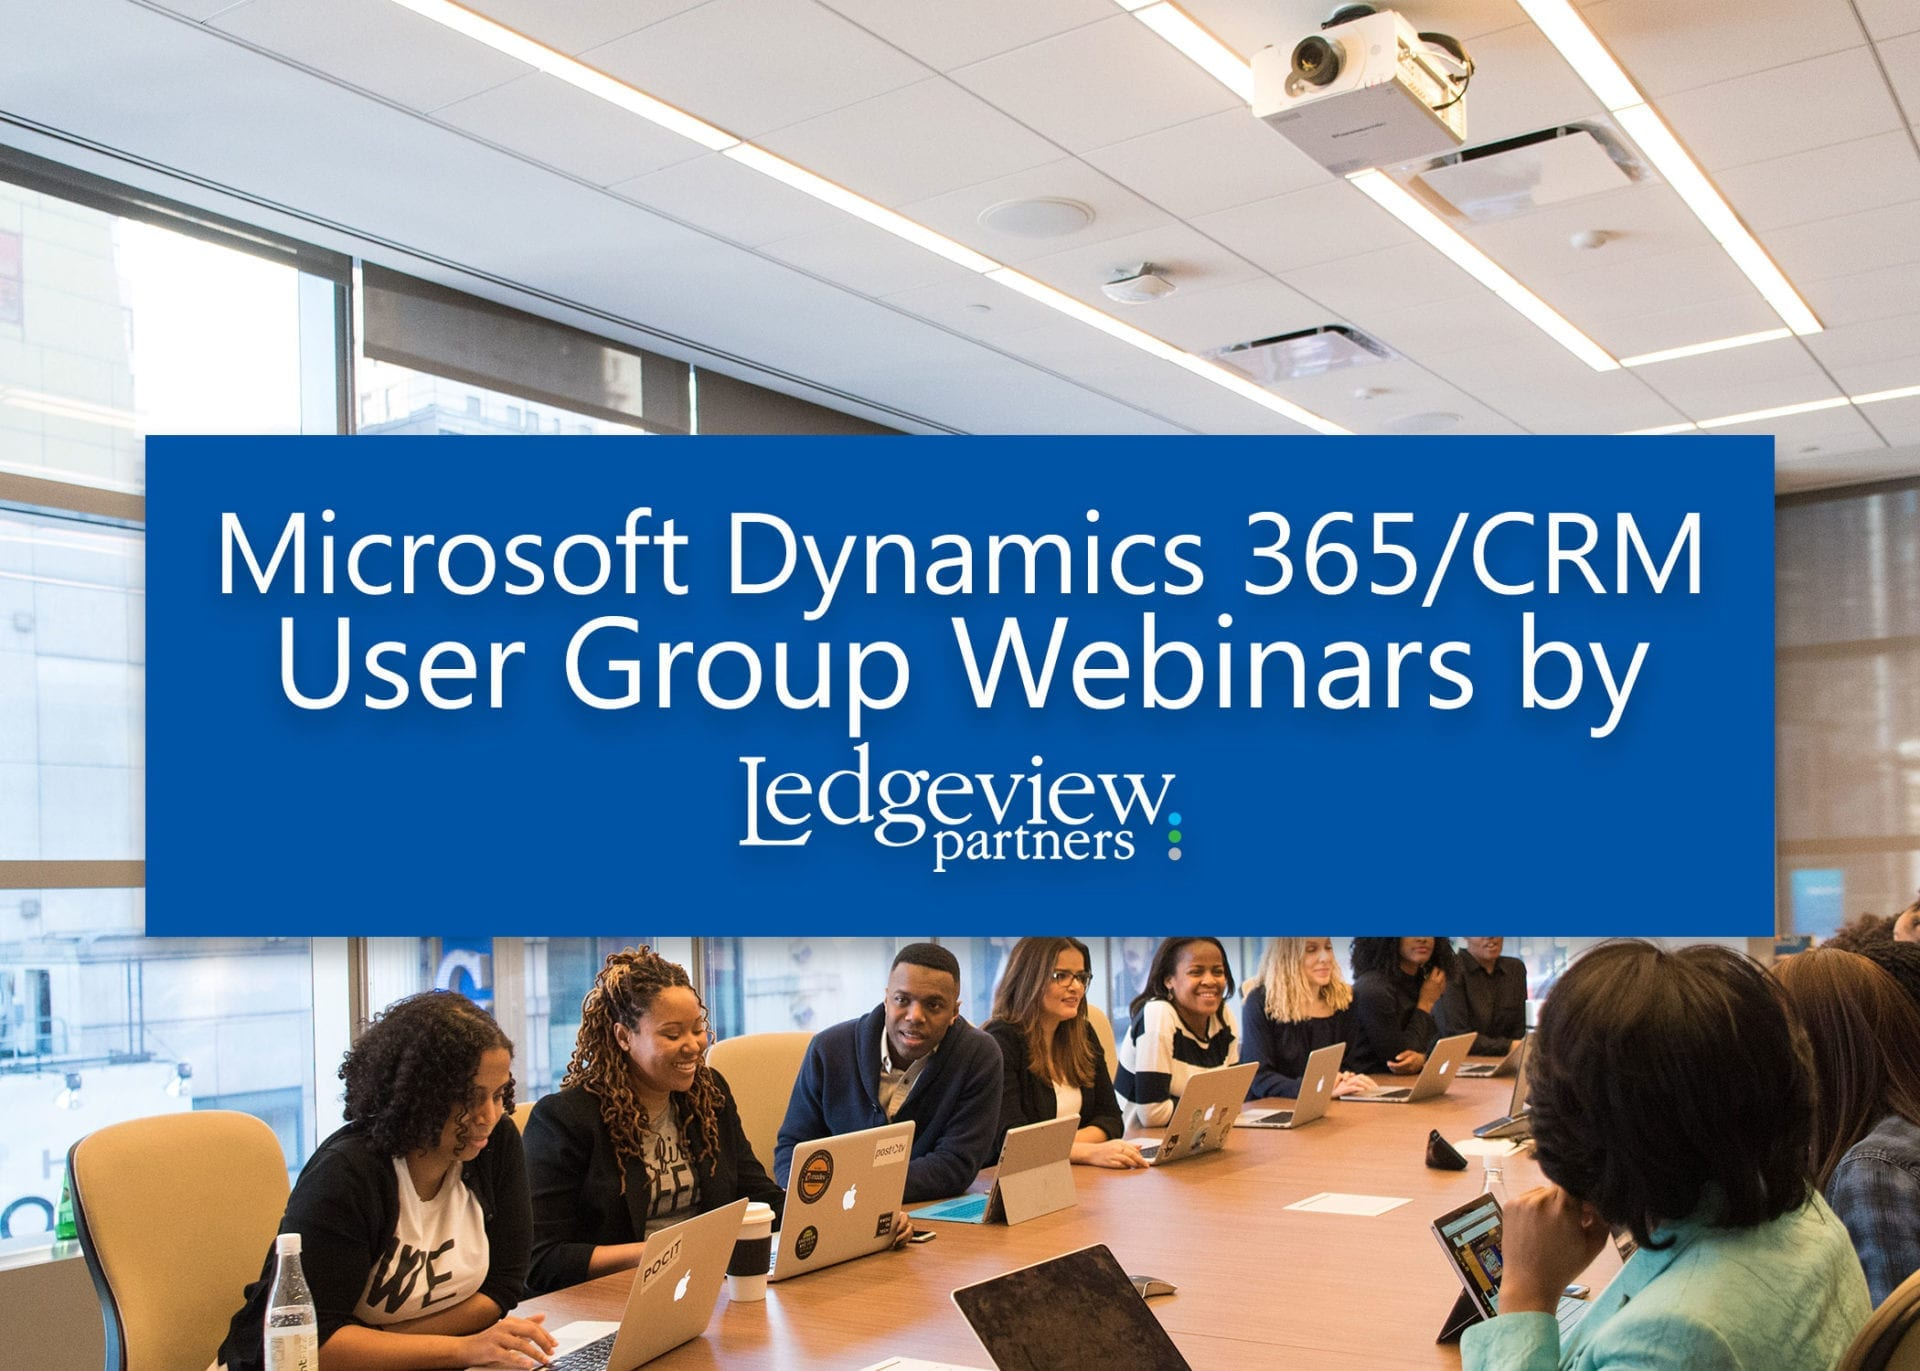 Ledgeview Partners Microsoft Dynamics 365/CRM User Groups